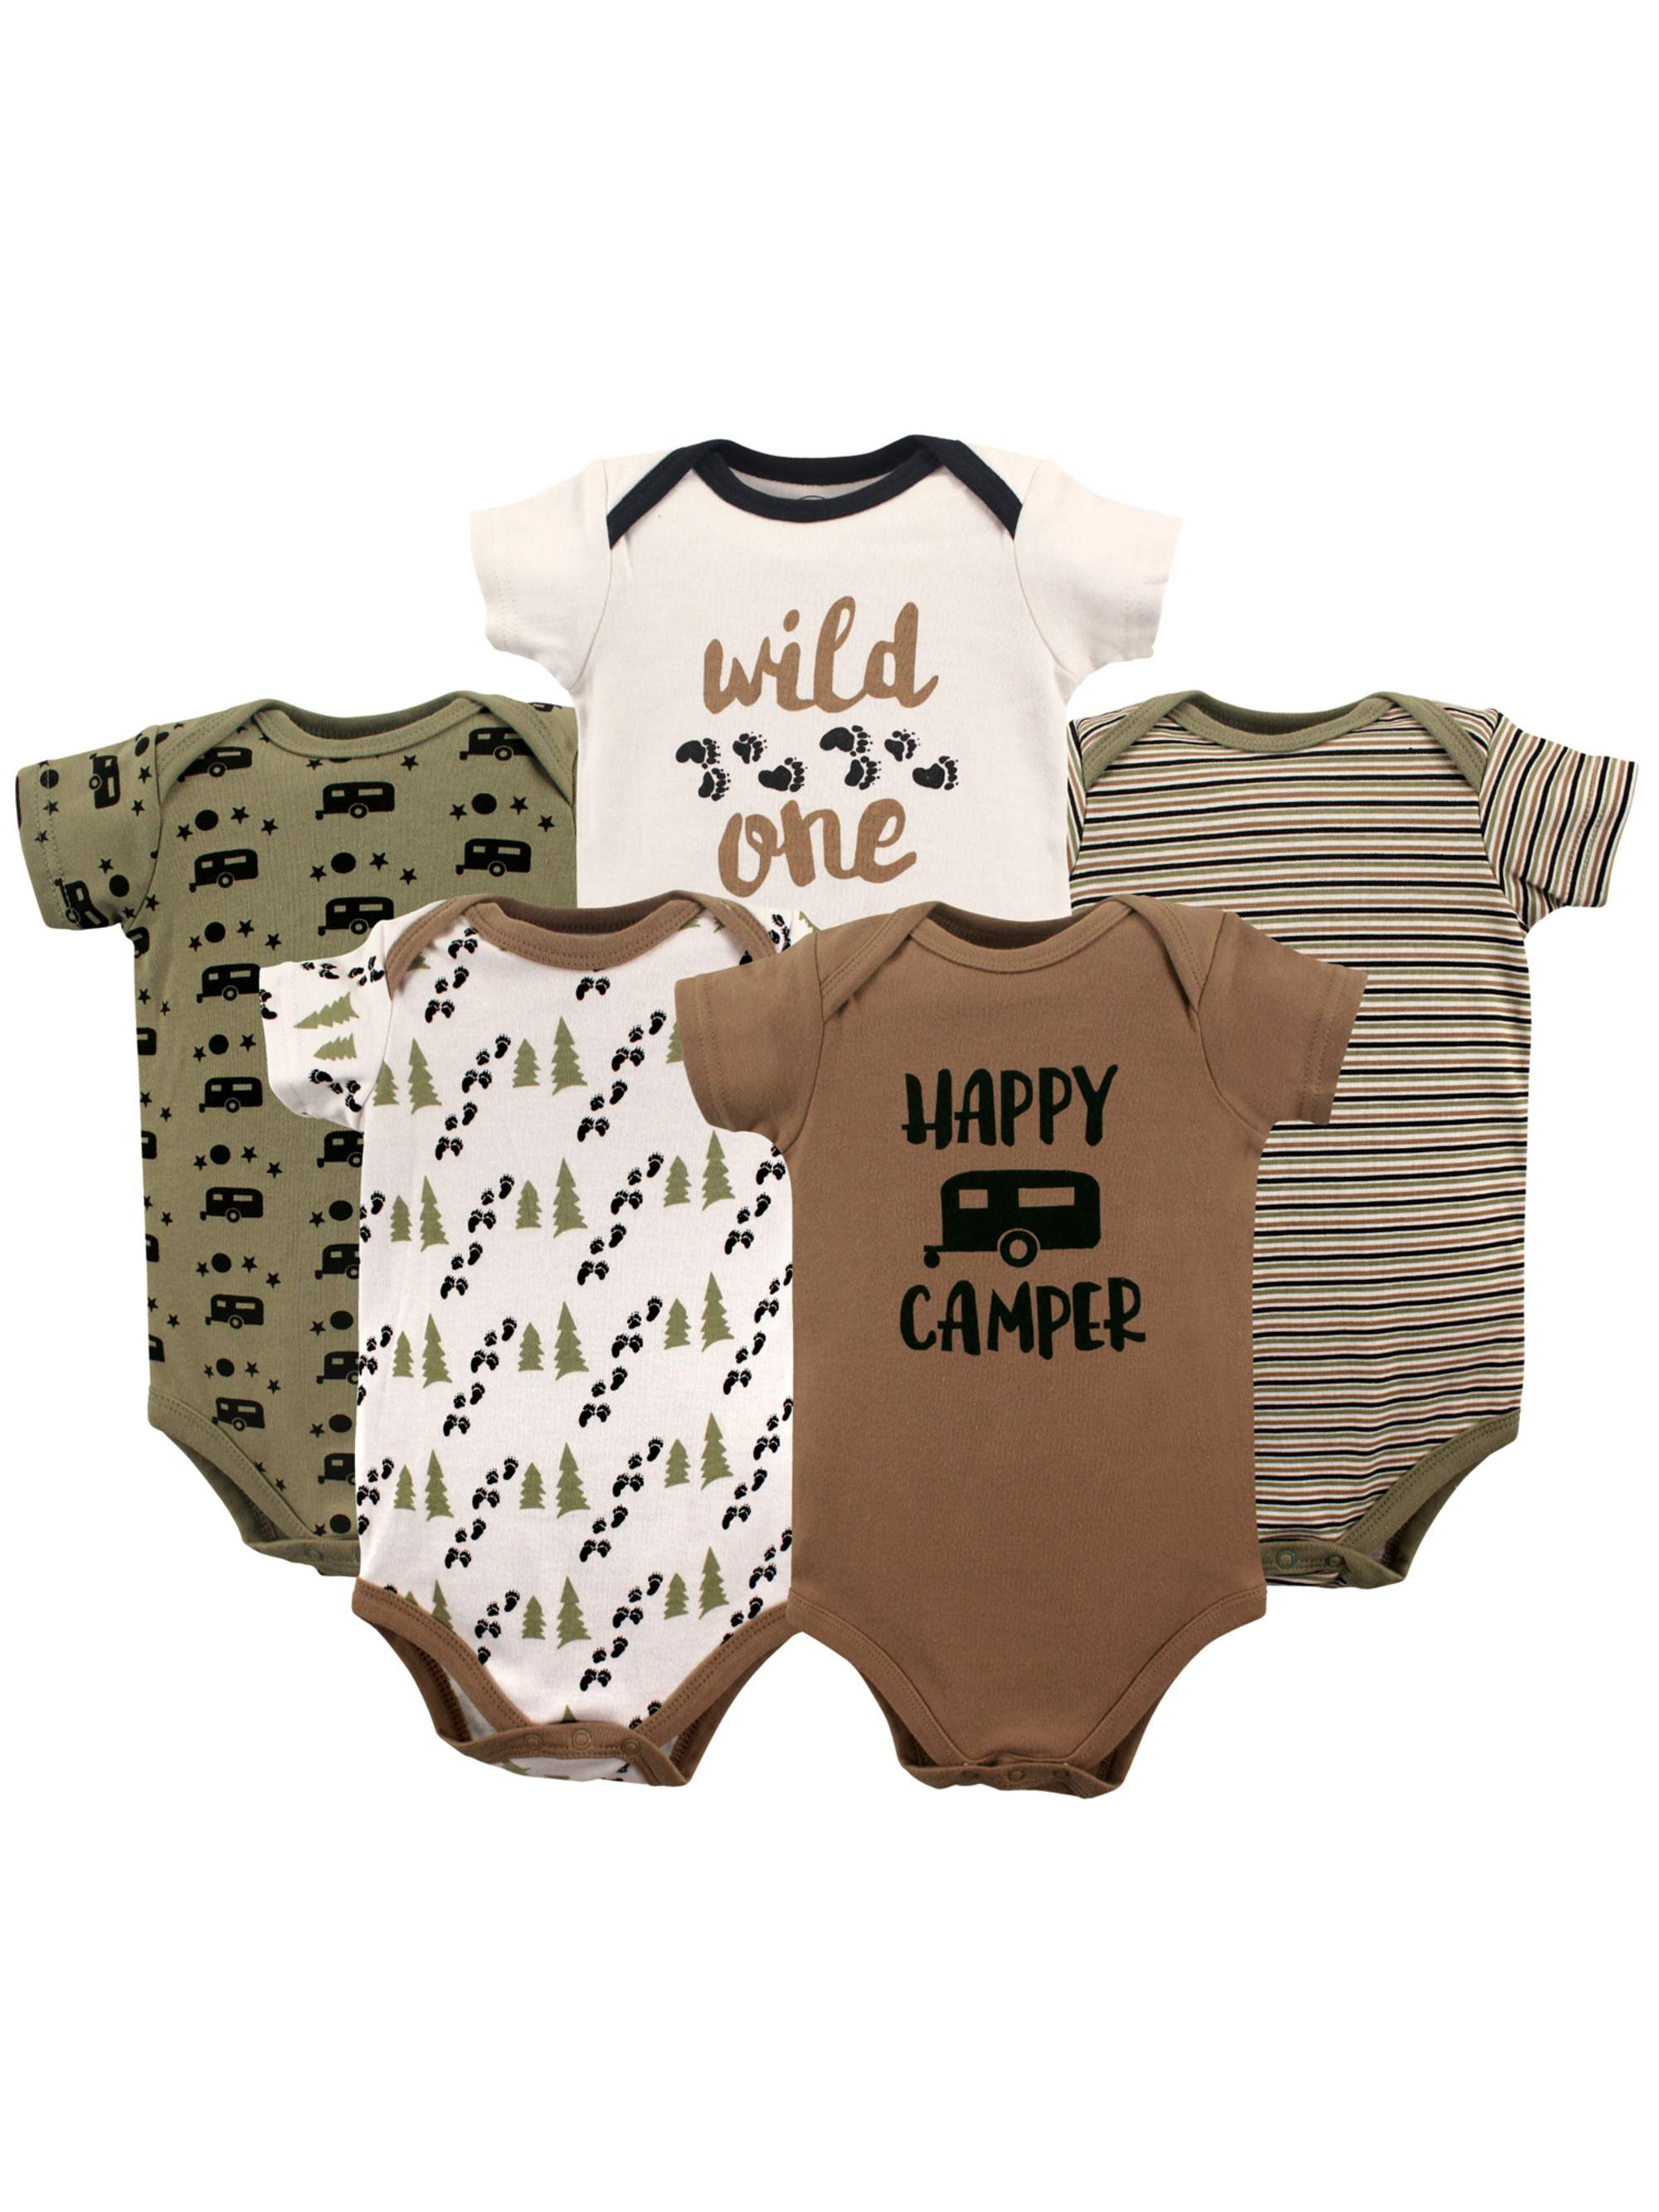 Luvable Friends Baby Set of 5 One-Pieces 0-3; 3-6;6-9 Mo Bodysuits